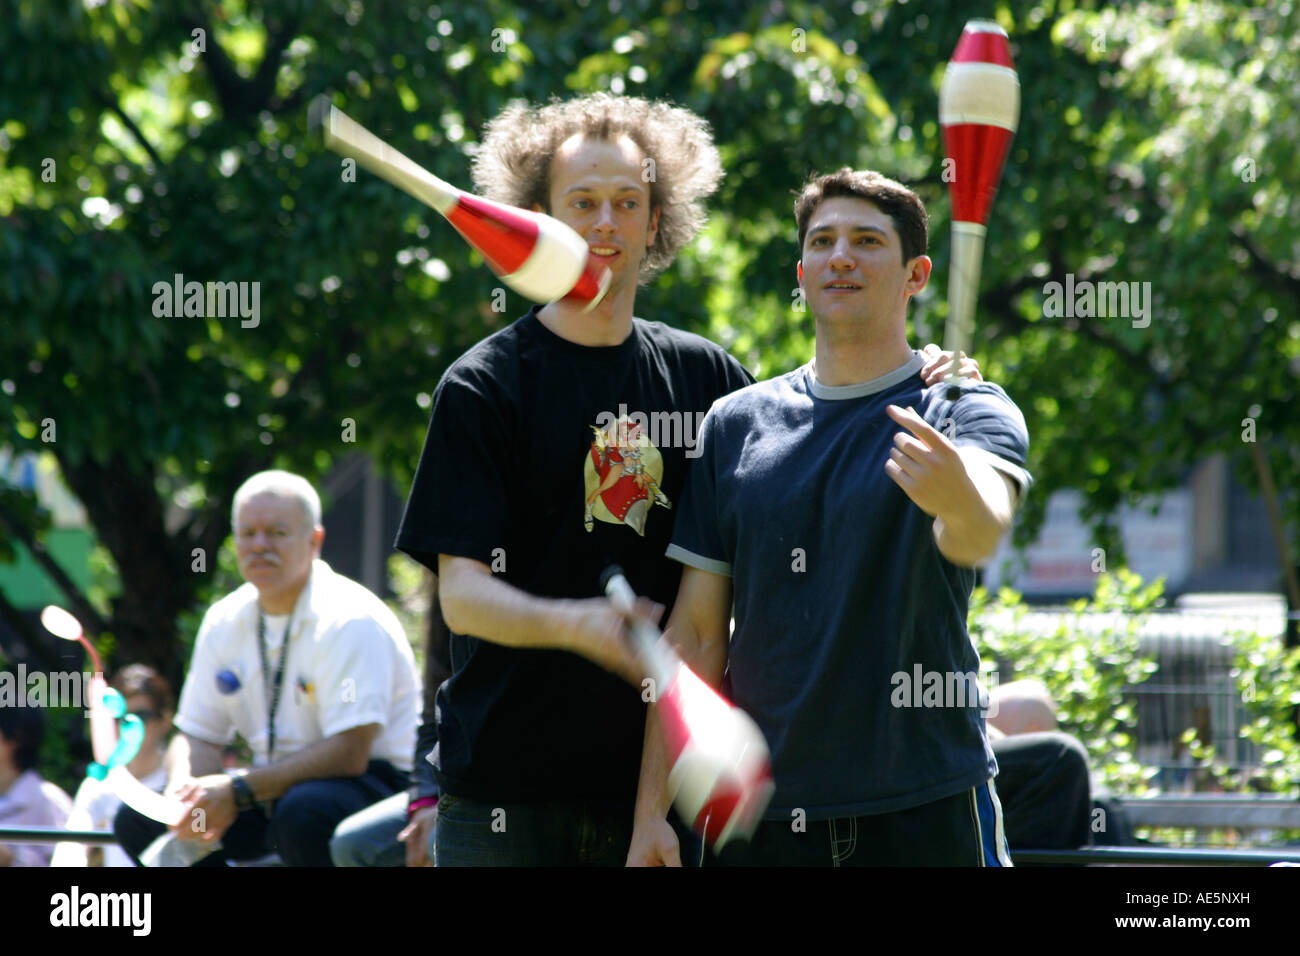 Two men collaborating to jointly juggle three red juggling pins as a spectator observes - Stock Image